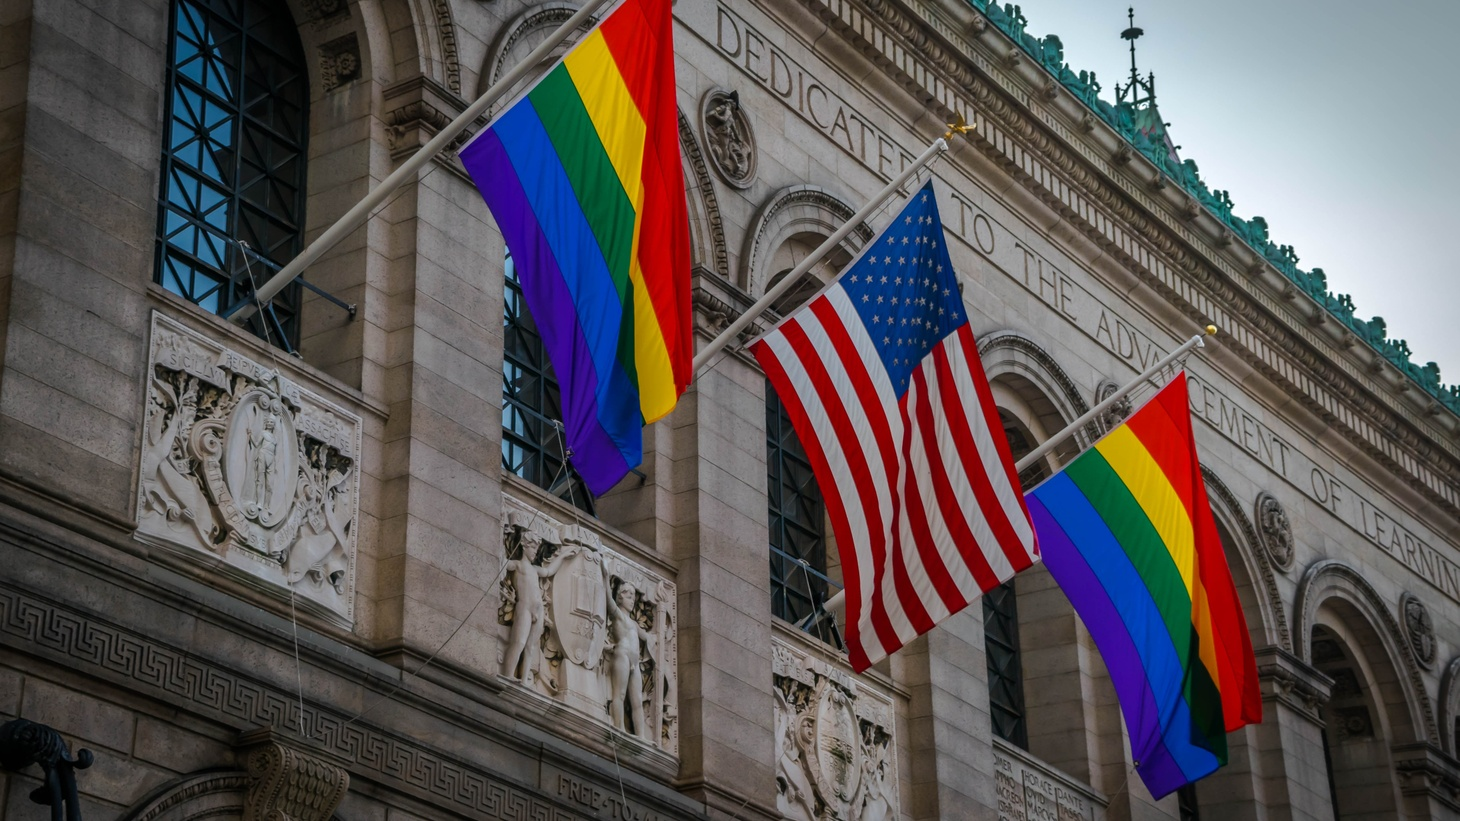 Over the past few years, more Orange County cities have flown the LGBTQ+ Pride flag at government buildings.